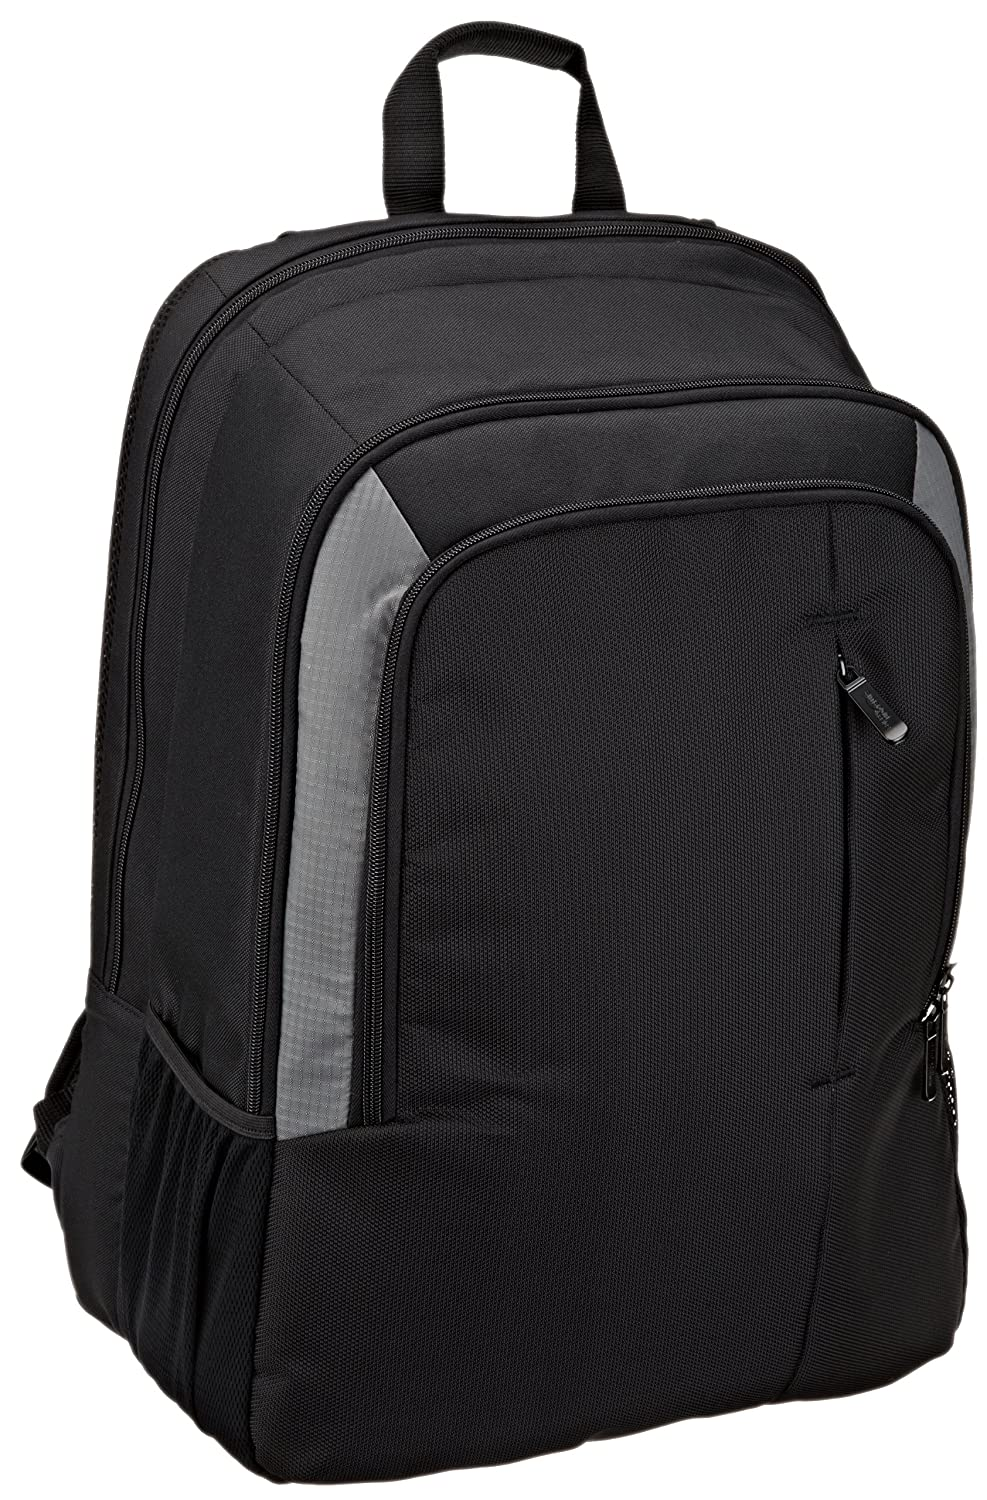 AmazonBasics Laptop Backpack - Fits Up To 15-Inch Laptops 31a612a34c